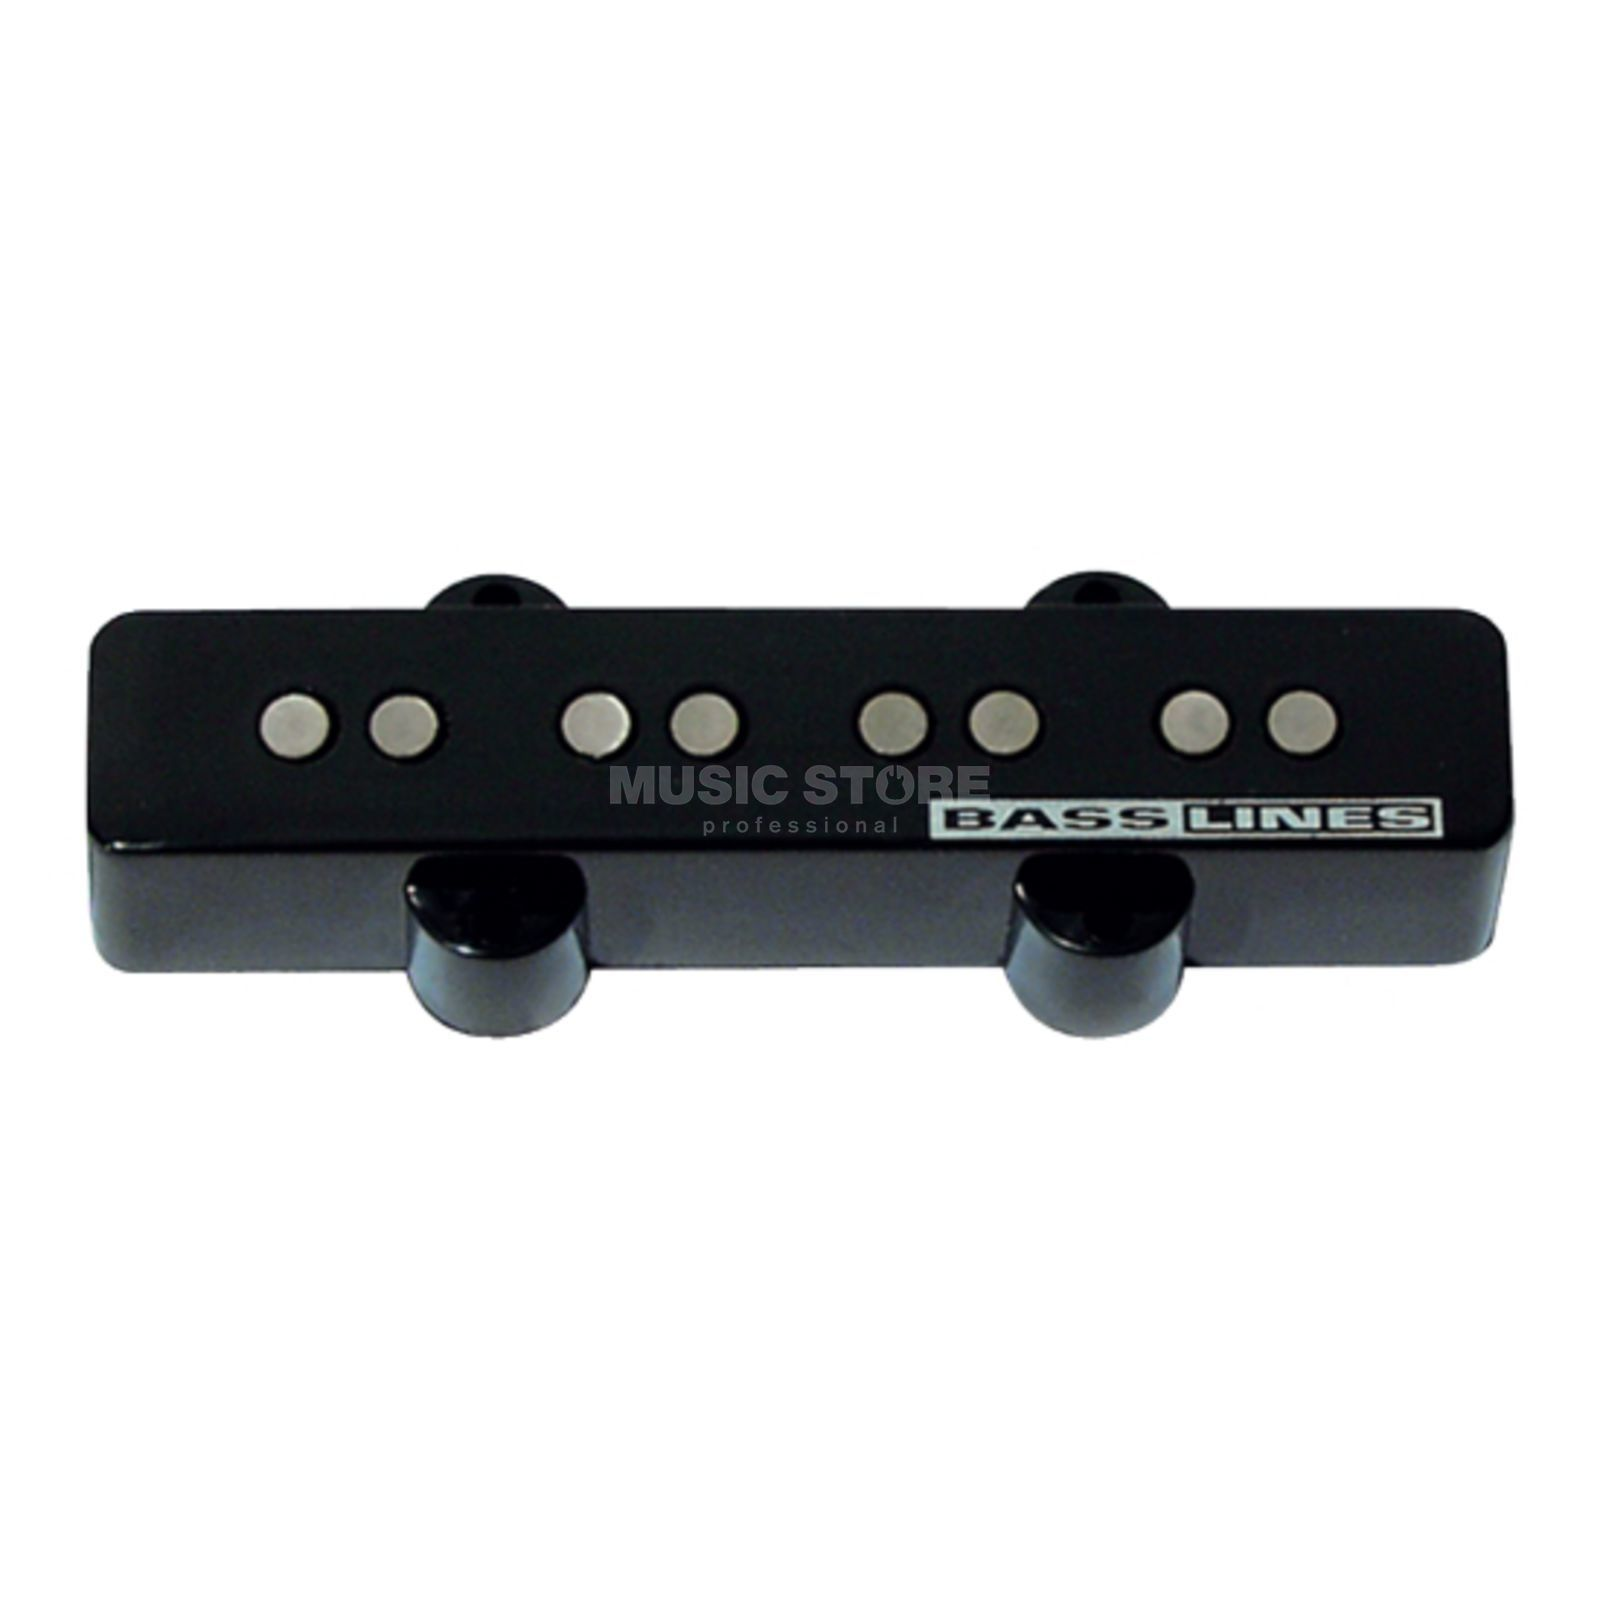 Seymour Duncan Hot Jazz Bass Bridge Produktbild